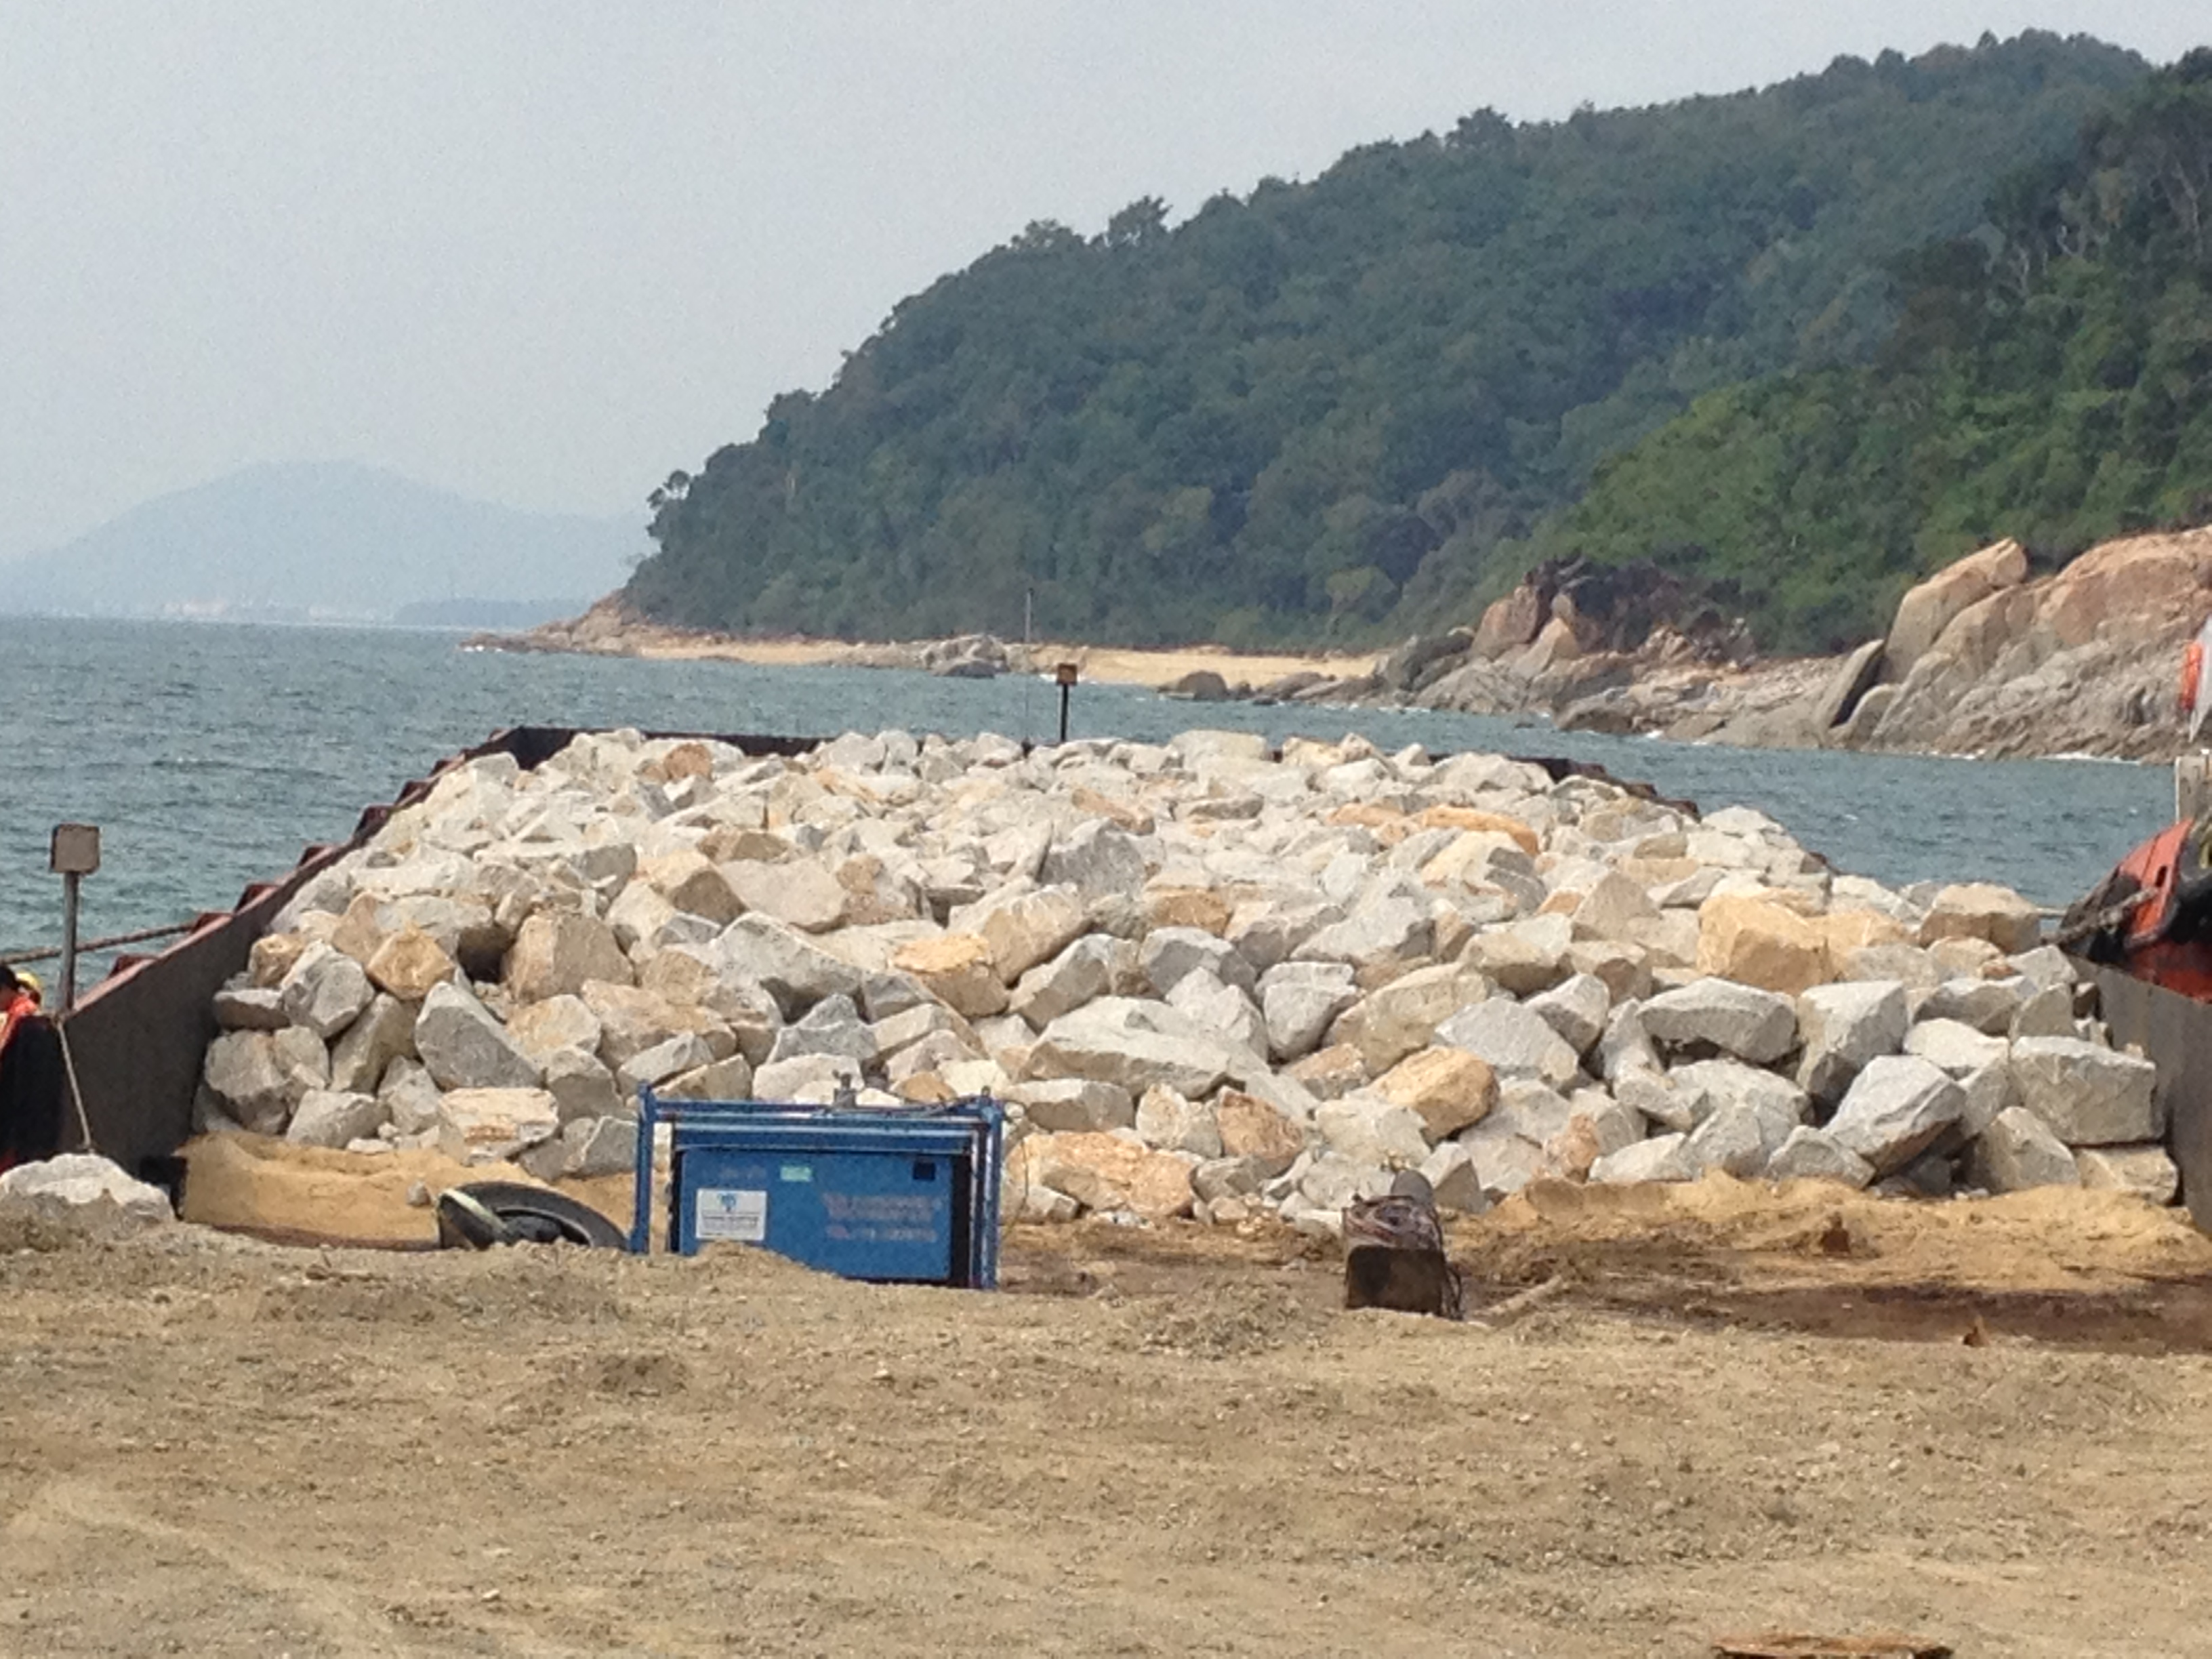 Land reclamation services malaysia sand armored rock for Soil reclamation